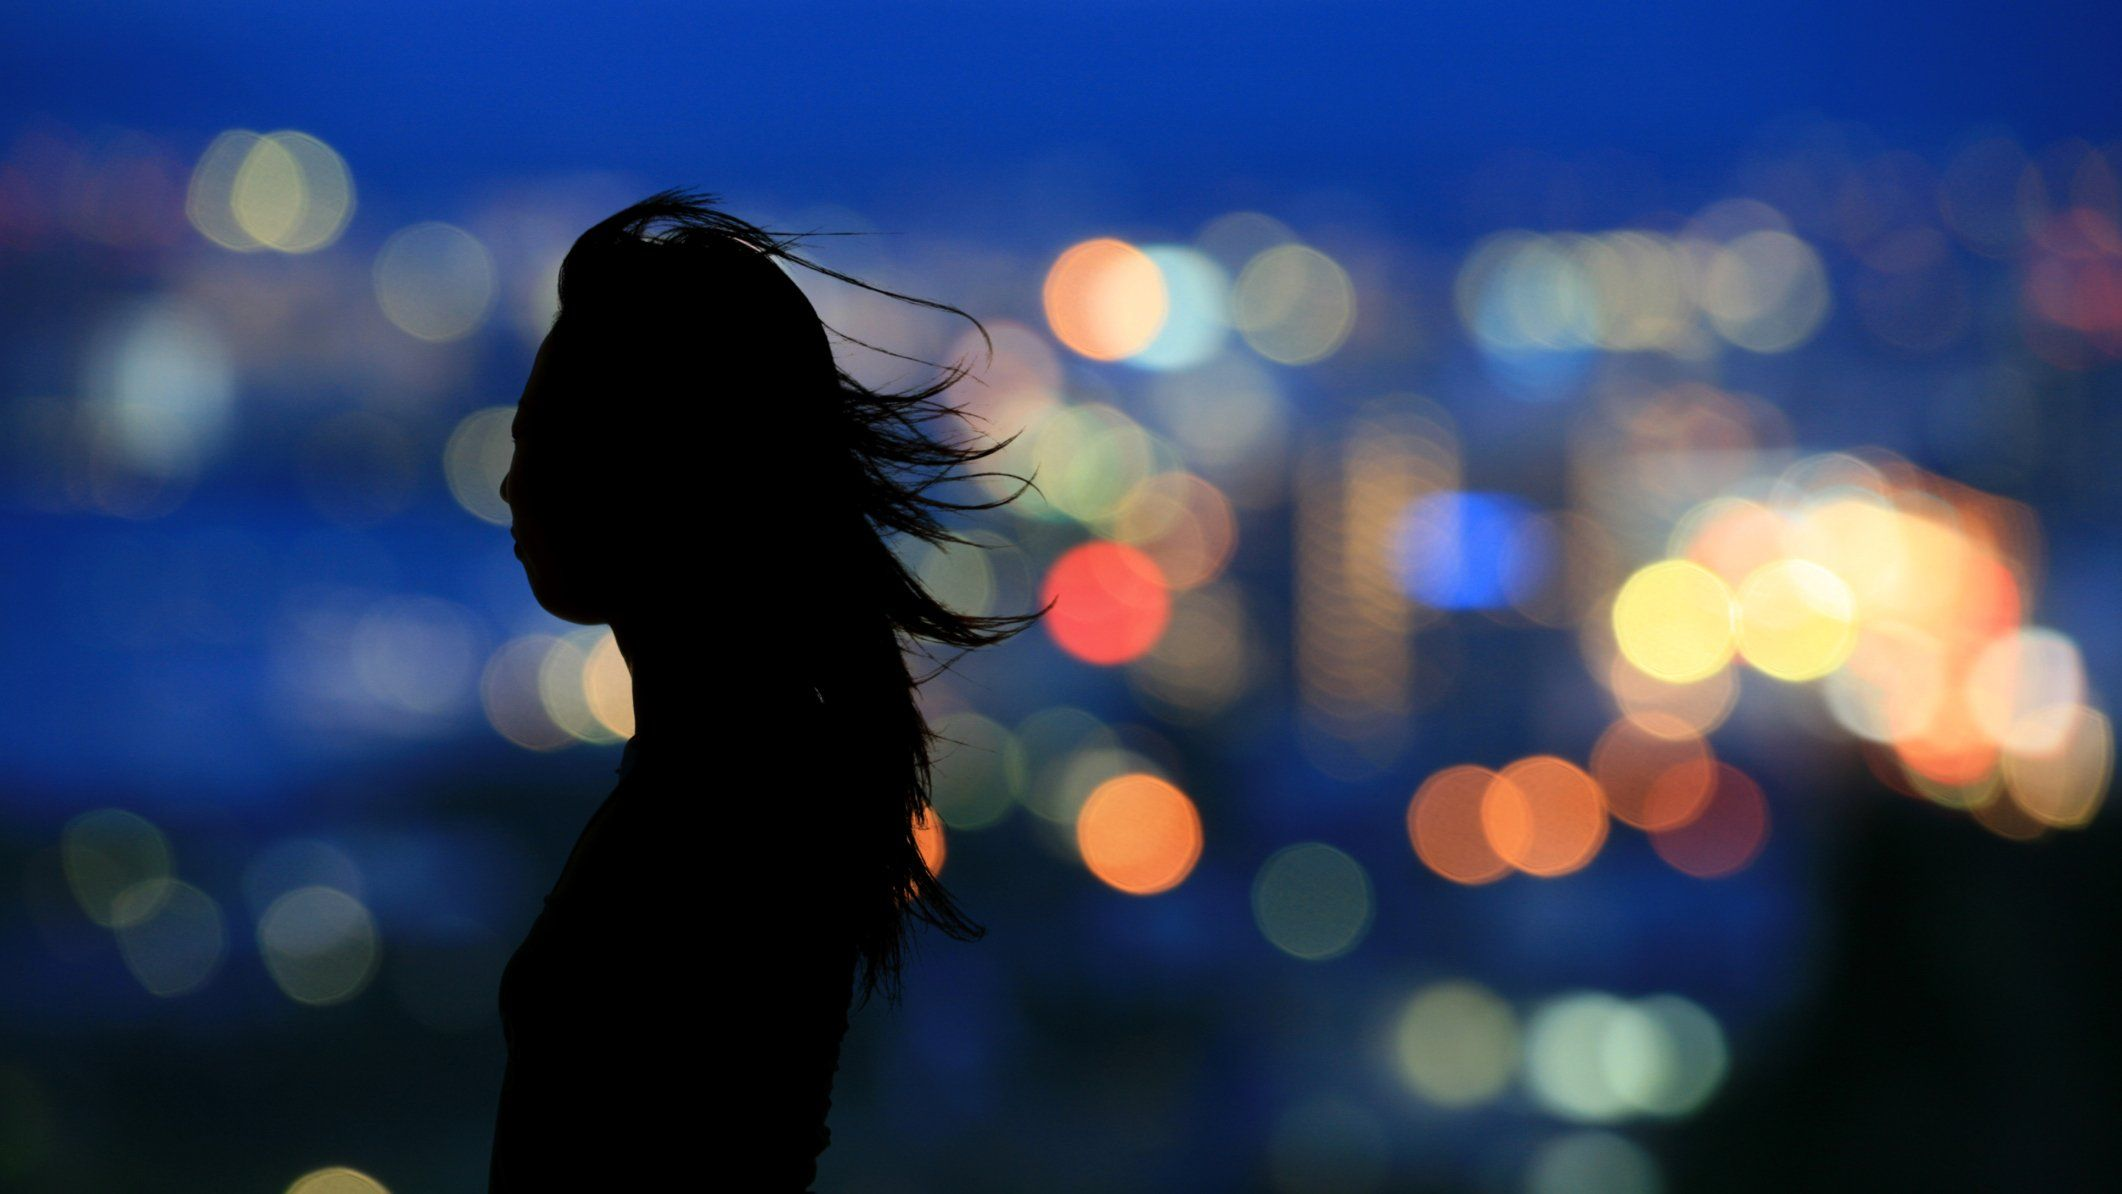 silhouette of woman in-front of city scape